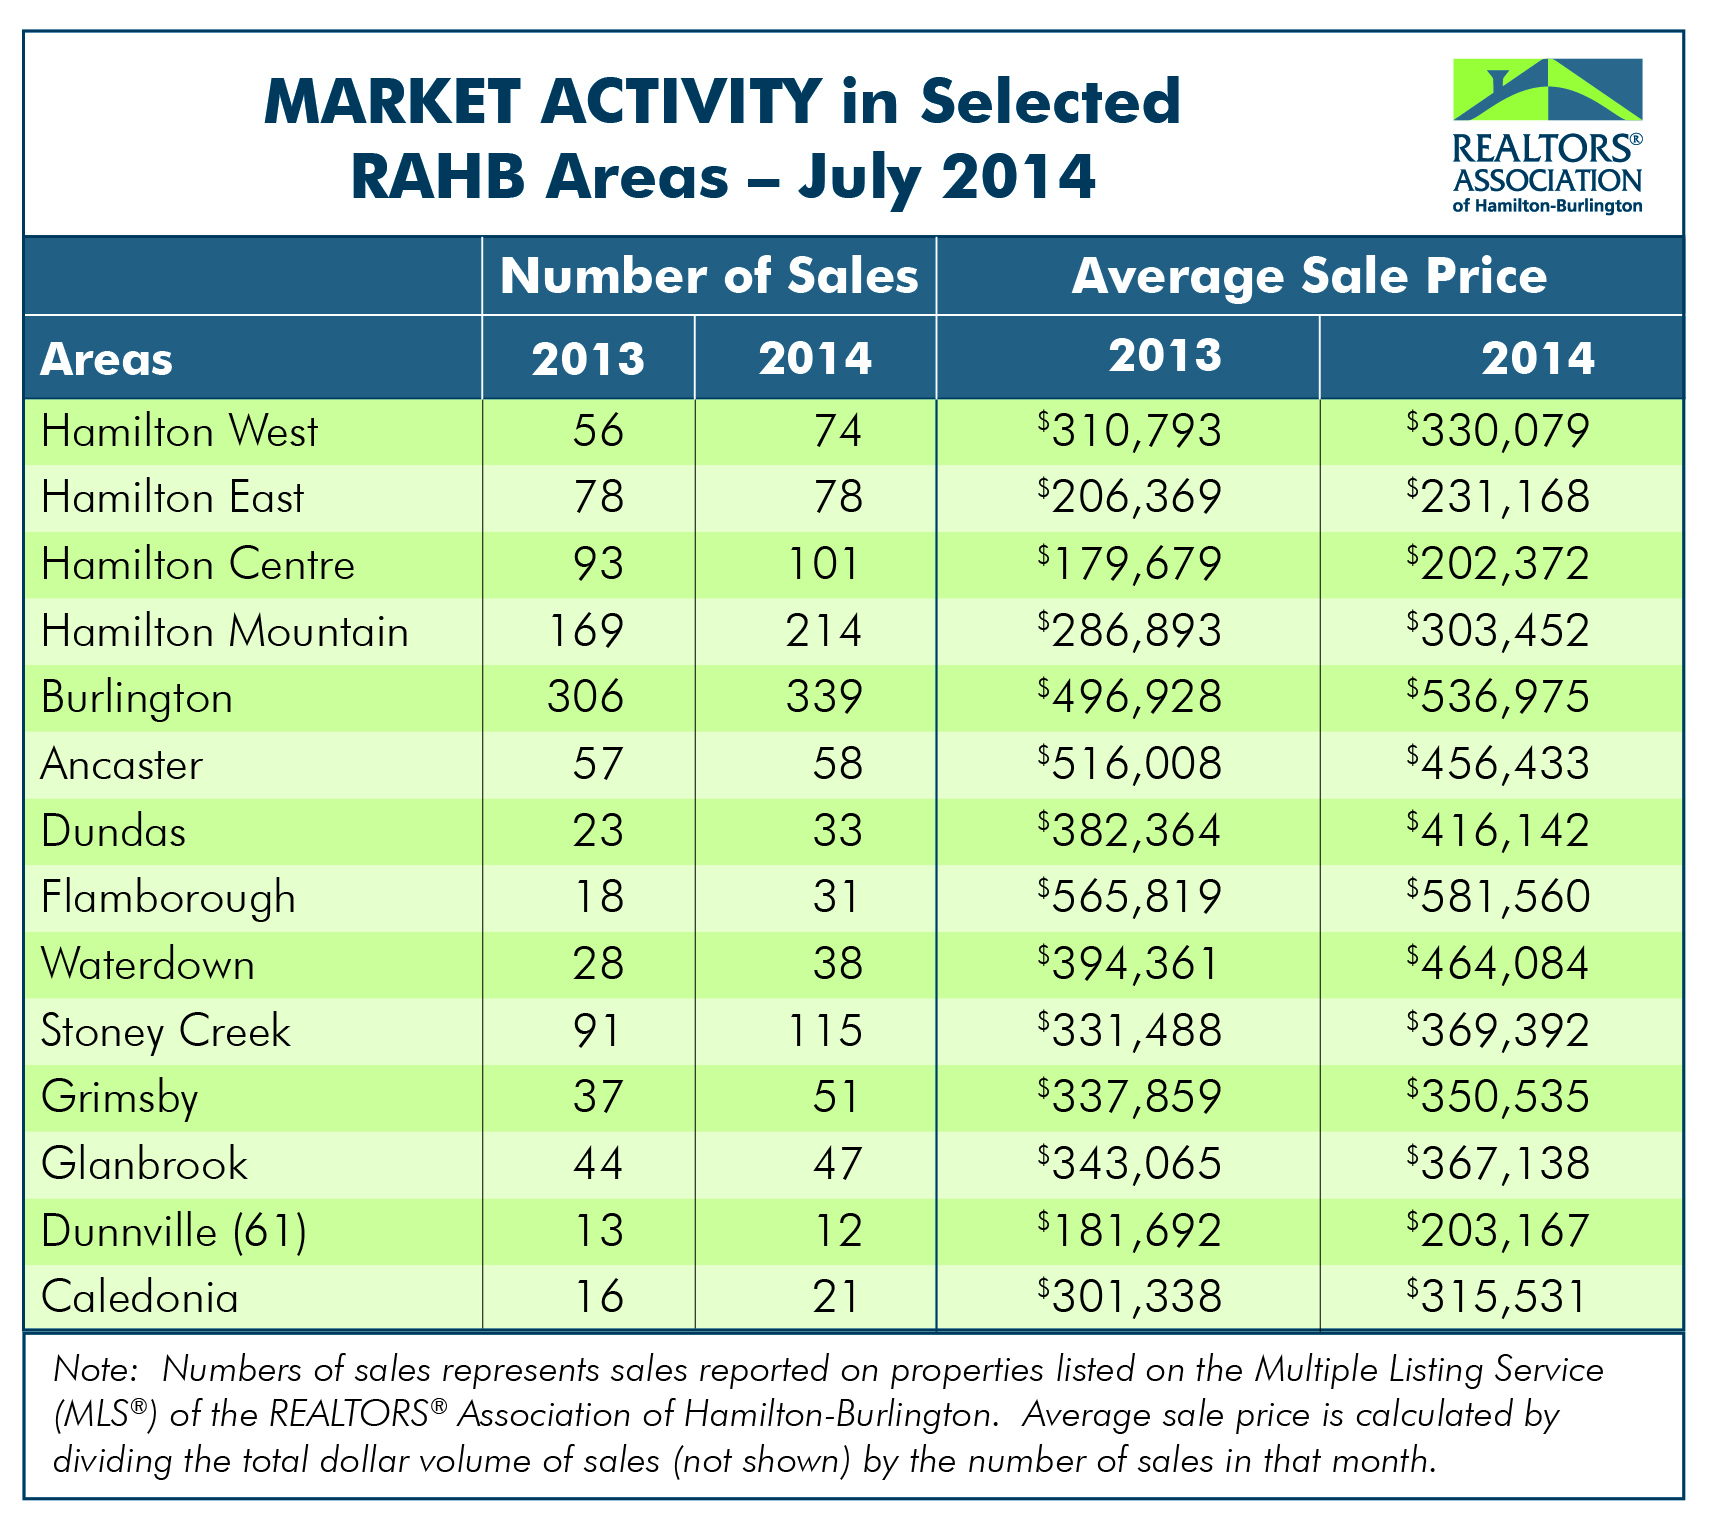 RAHB Market Activity for July